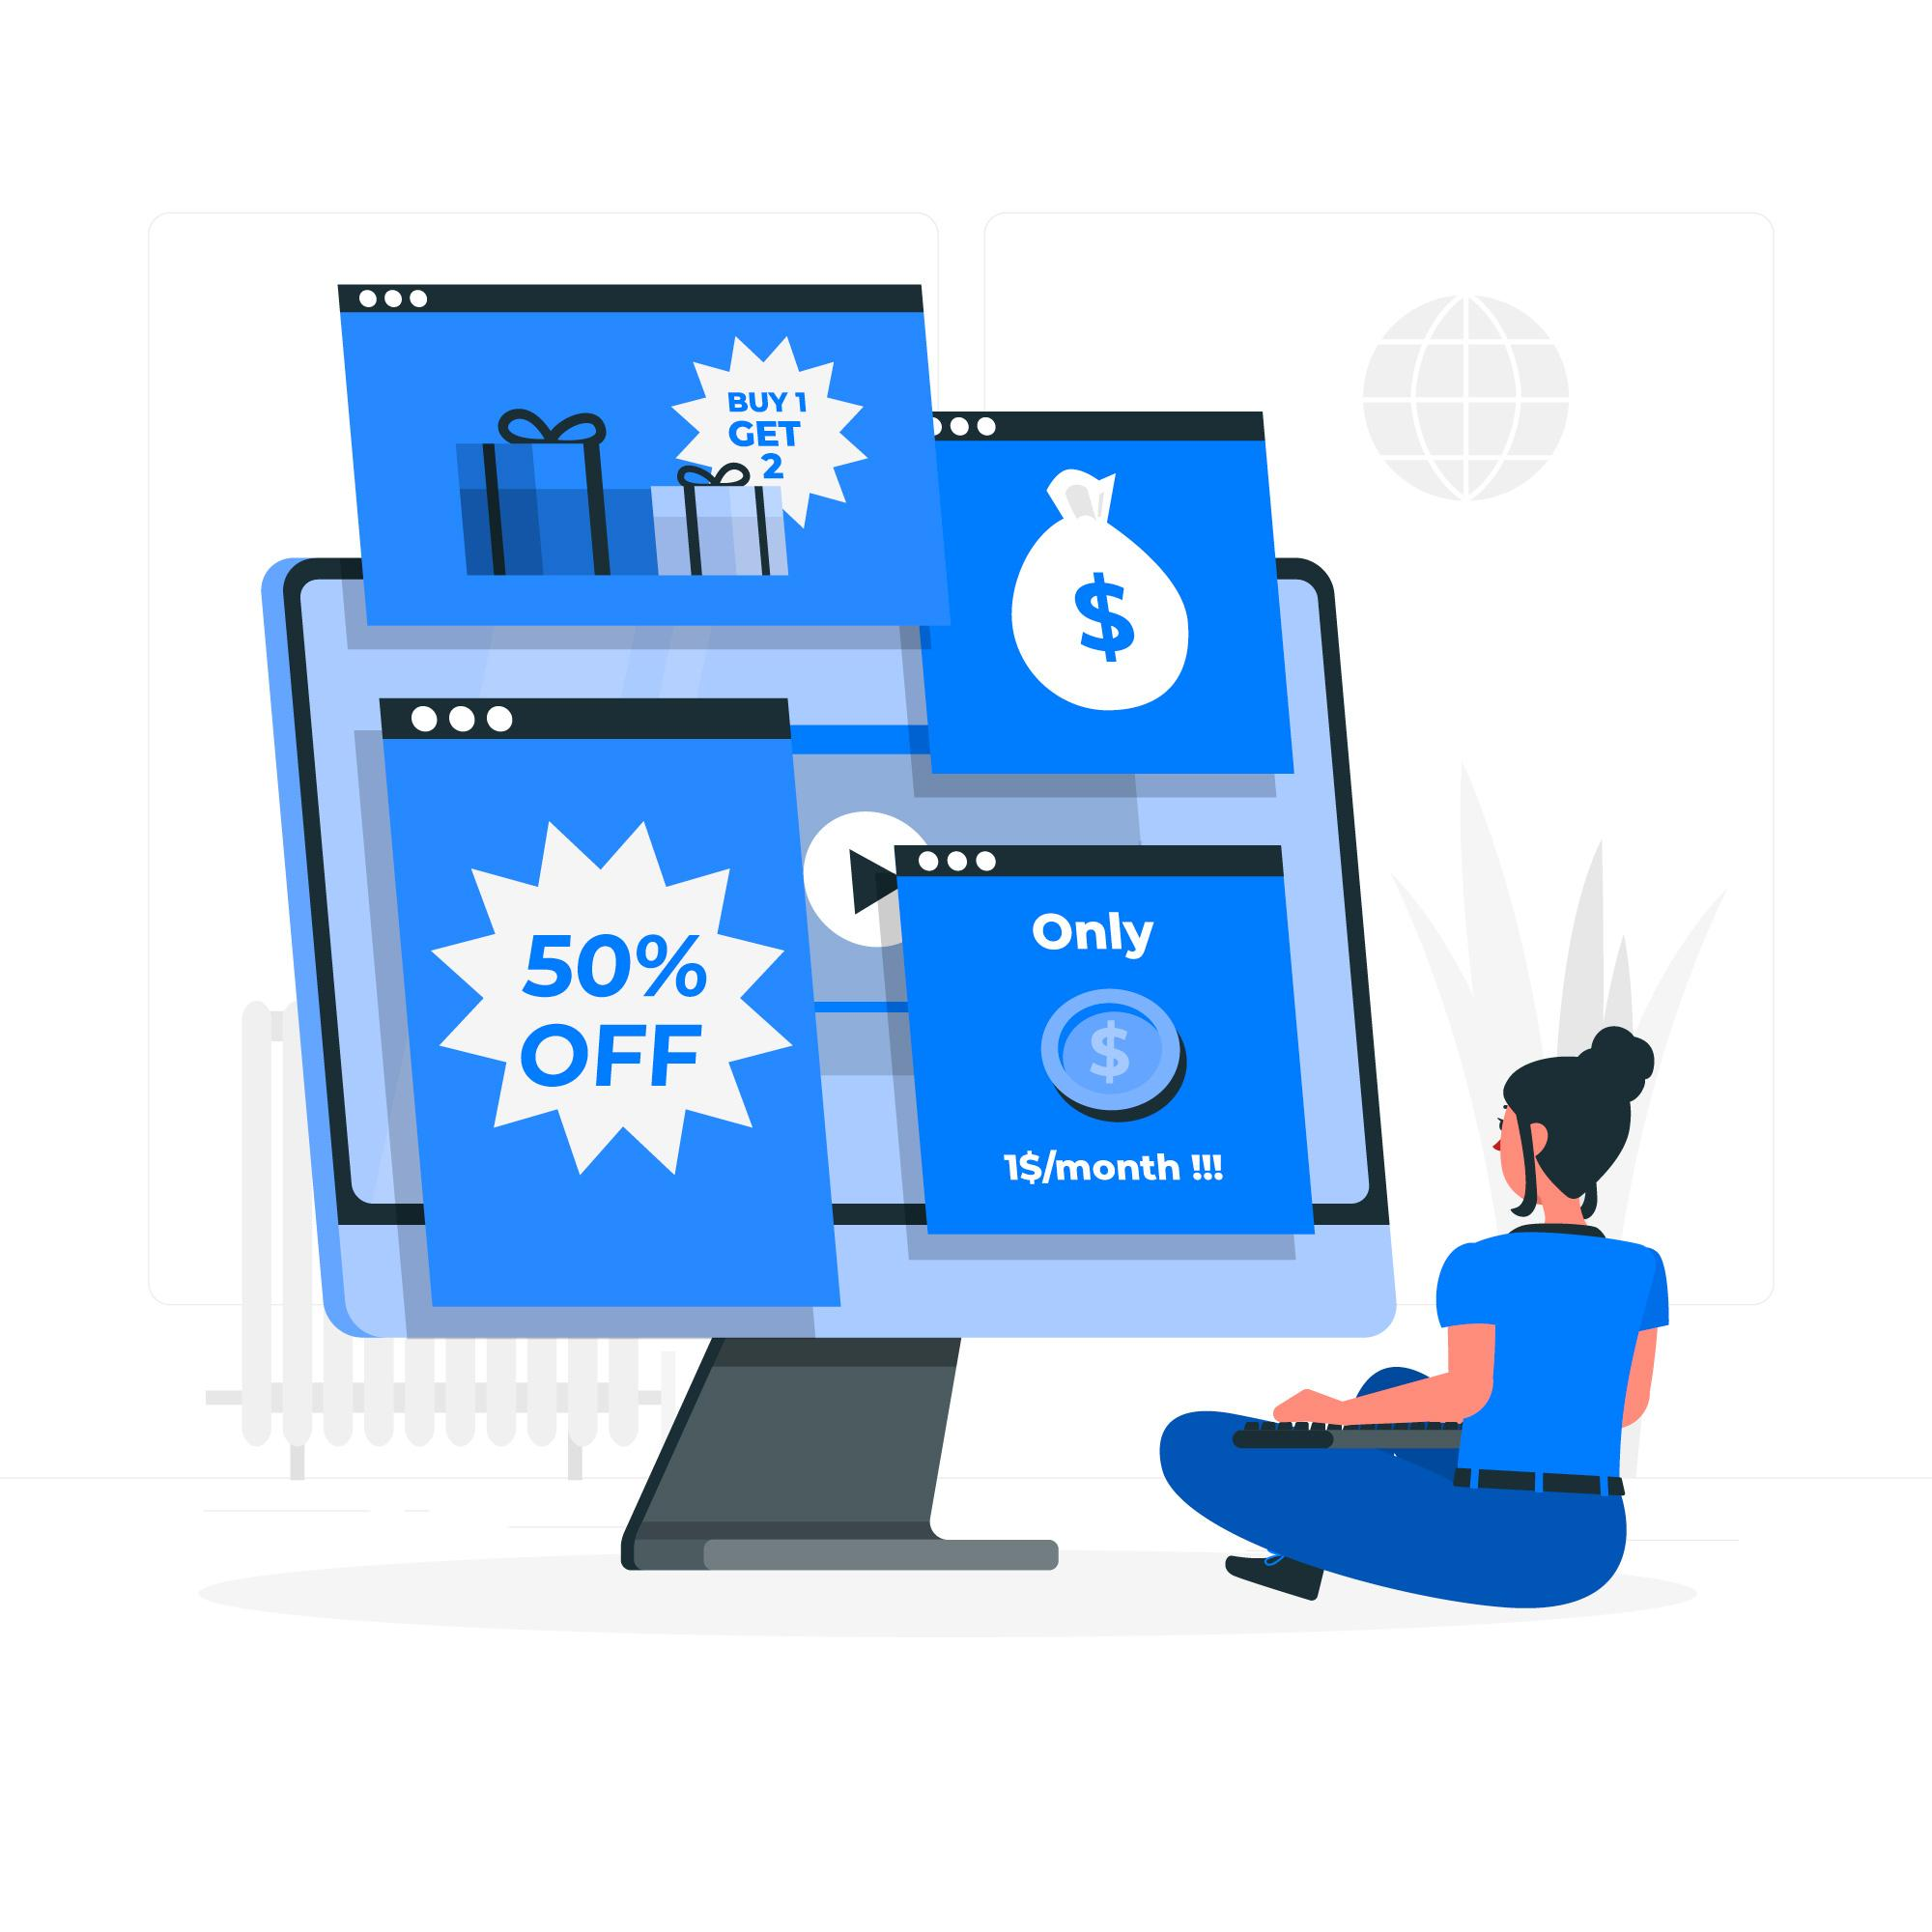 What are the three marketing objectives that can be met via targeting on google display ads